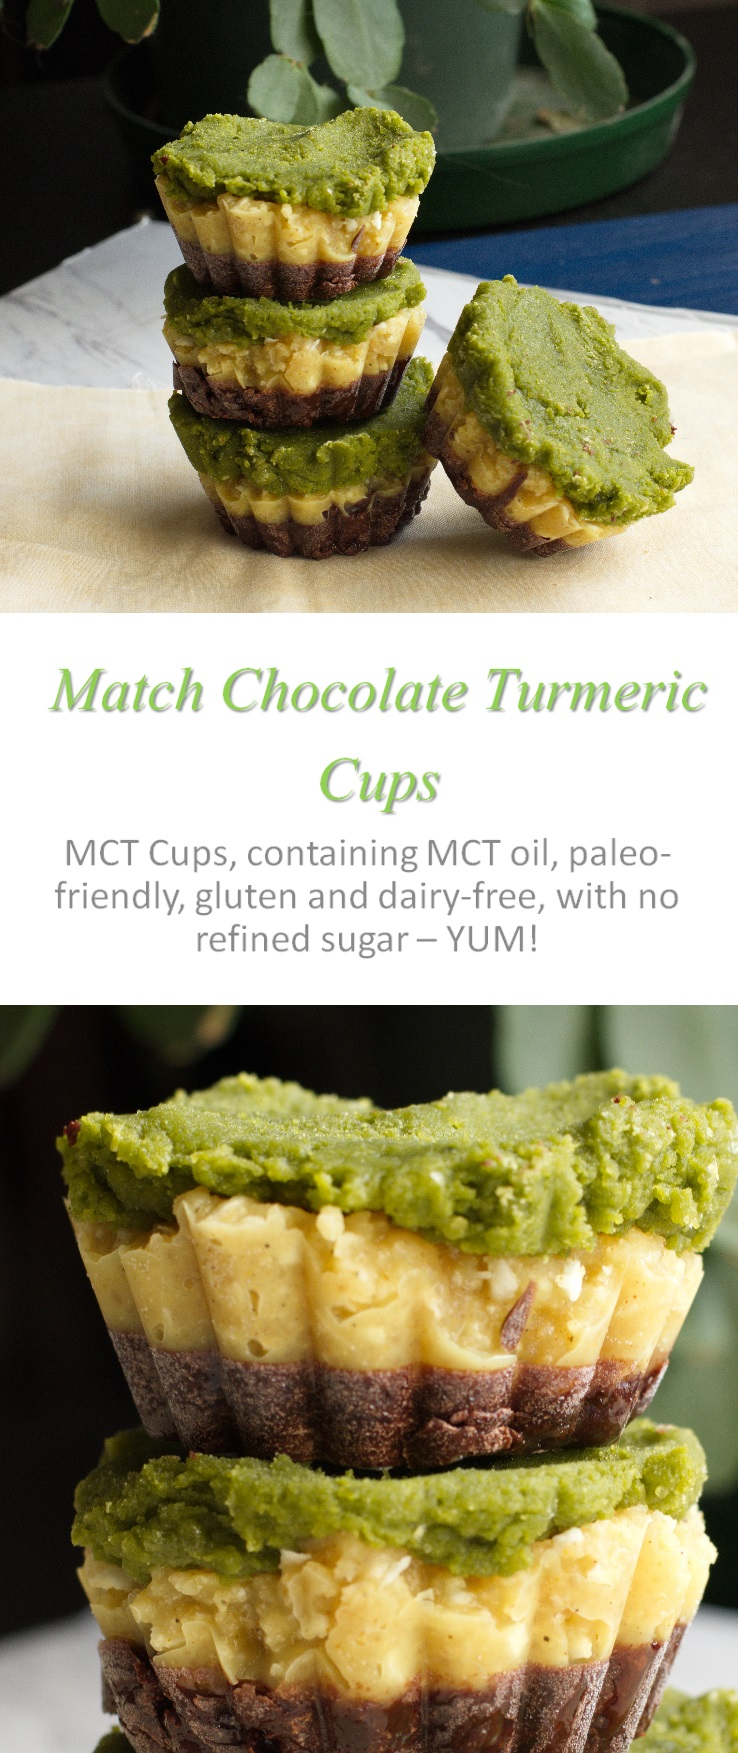 These matcha chocolate turmeric cups (MCT cups) are a play on MCT oil, but give you a boost of superfoods in every bite! #mctoil #cookathome #glutenfree #dairyfree